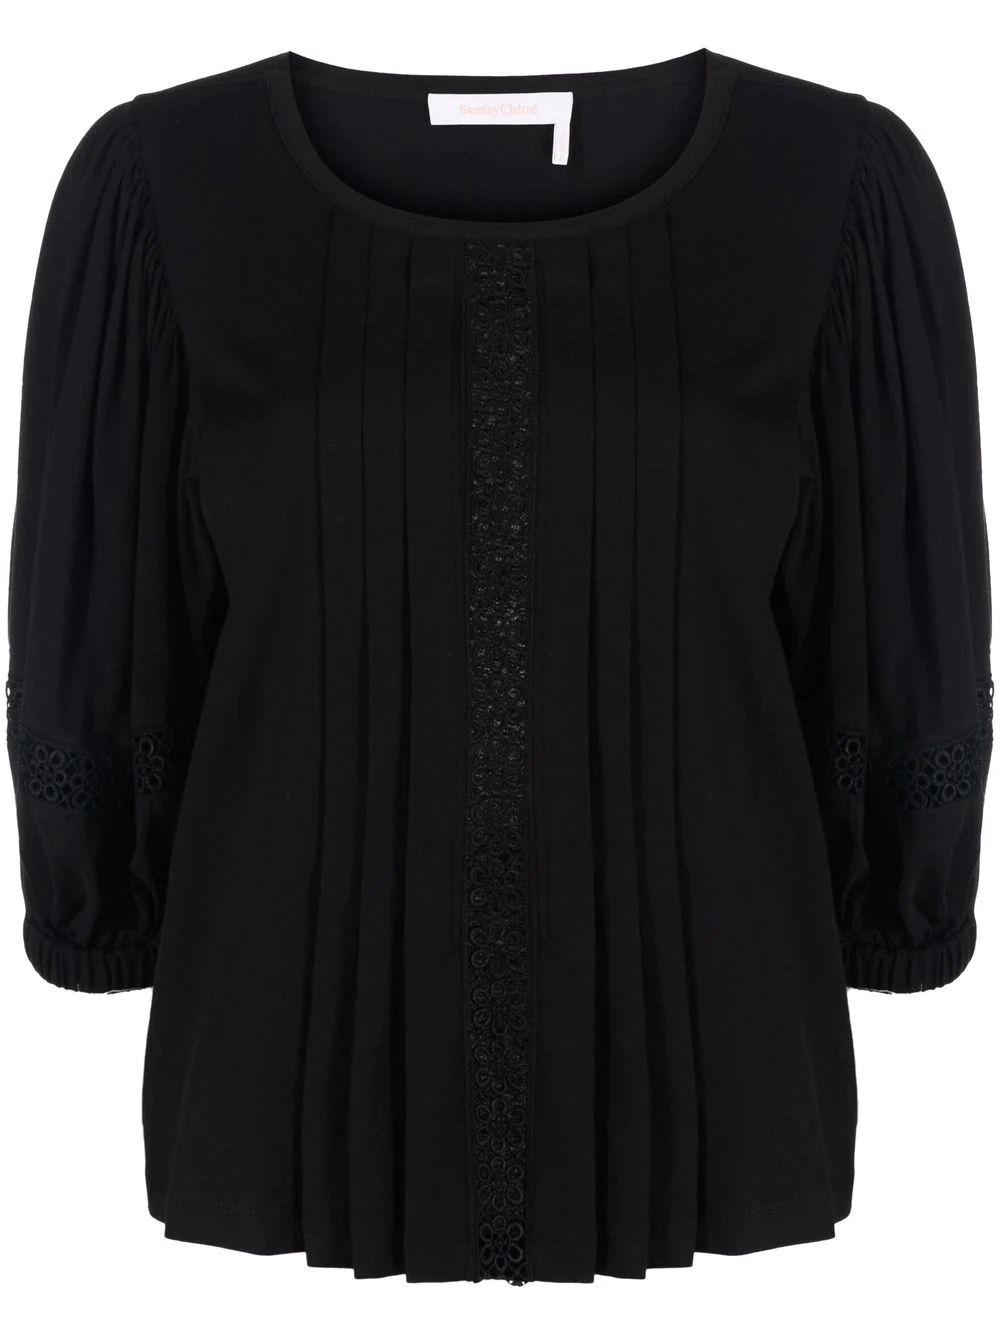 Cotton Jersey Embellished Tee Item # CHS21WJH16